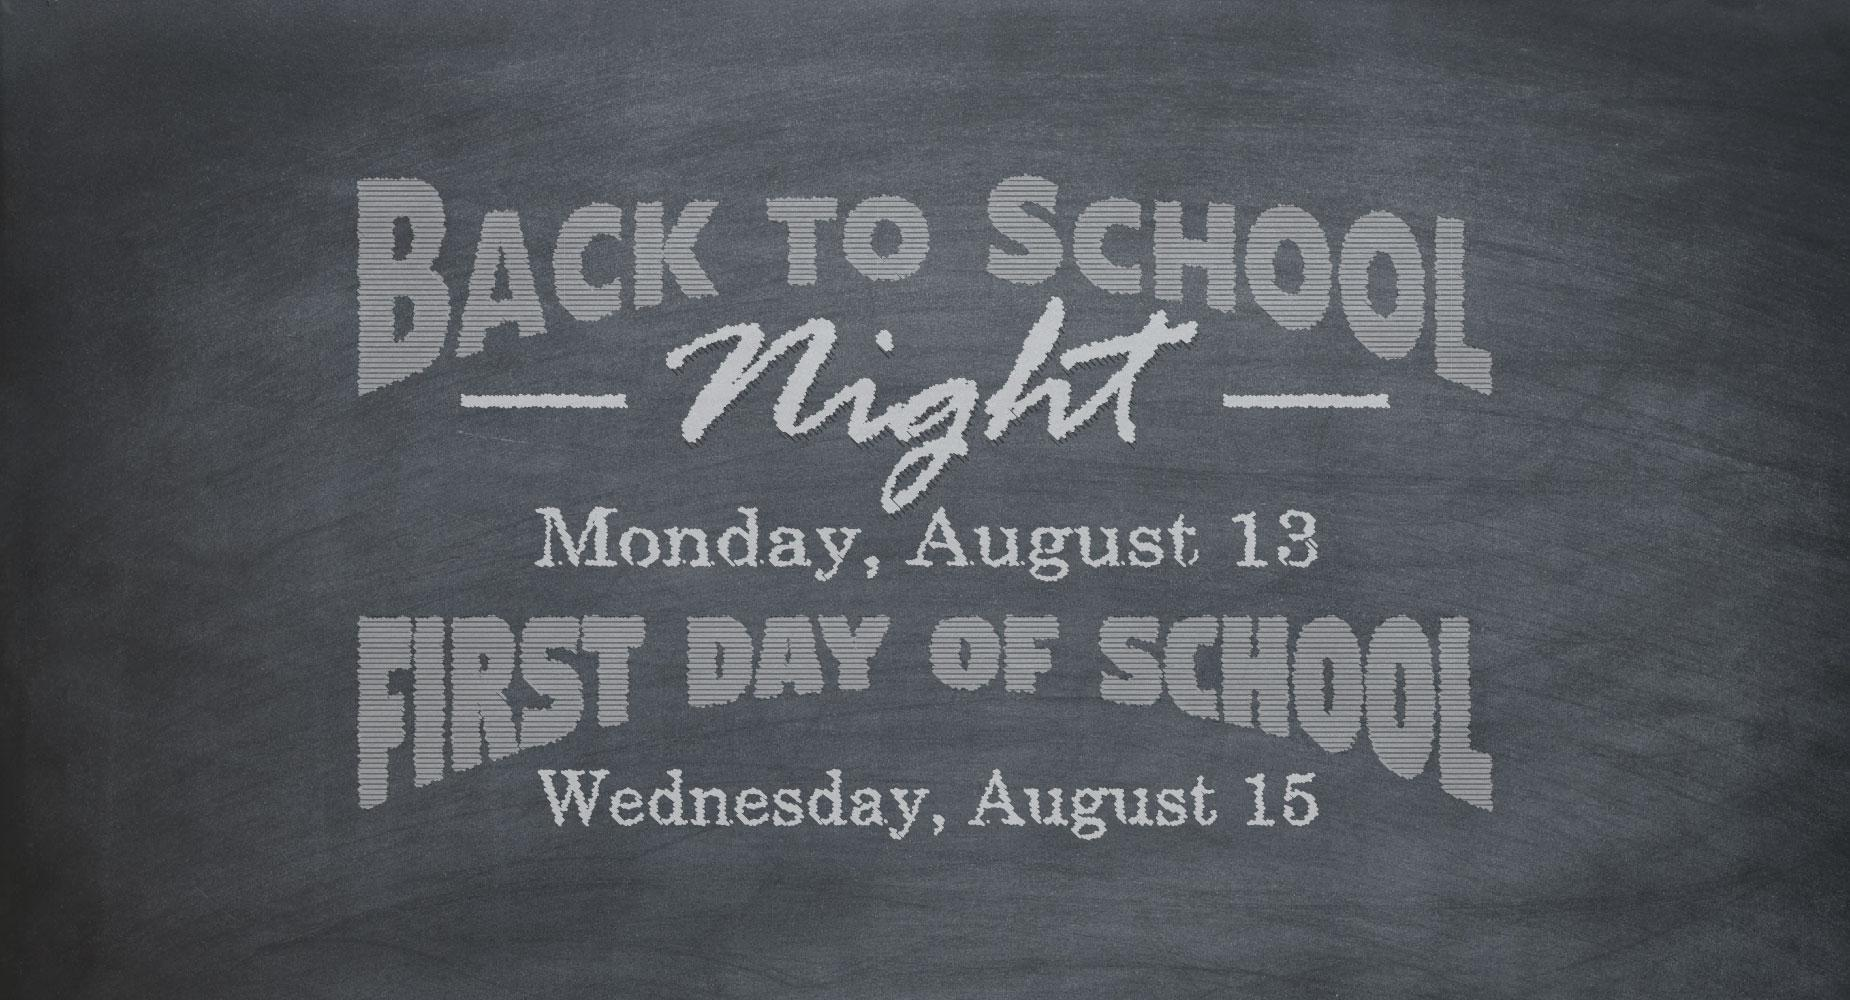 back to school night on August 13 and first day of school on august 15